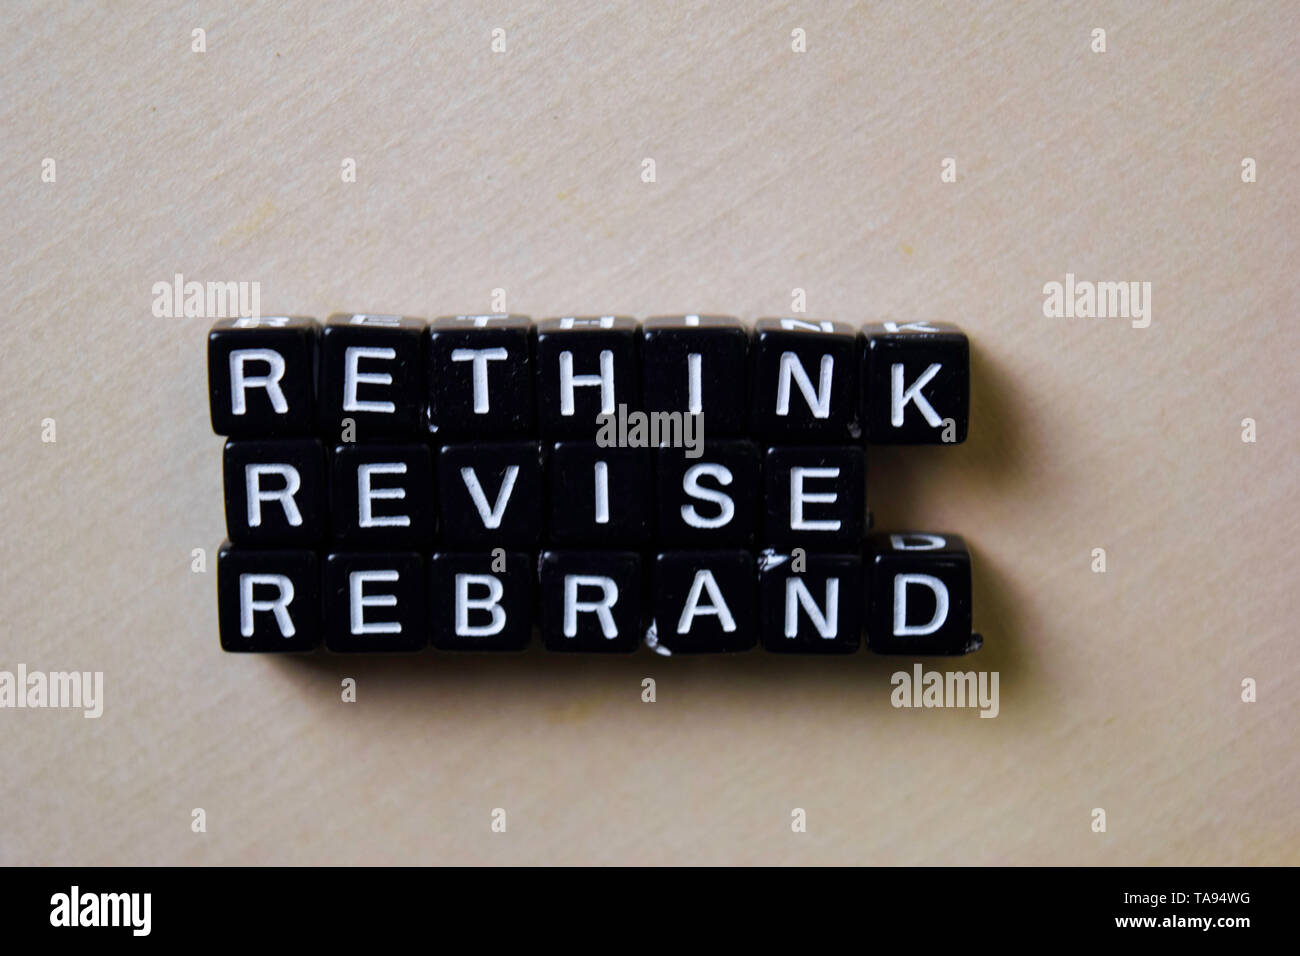 Reflect - Rethink - Rebrand on wooden blocks. Business and inspiration concept - Stock Image